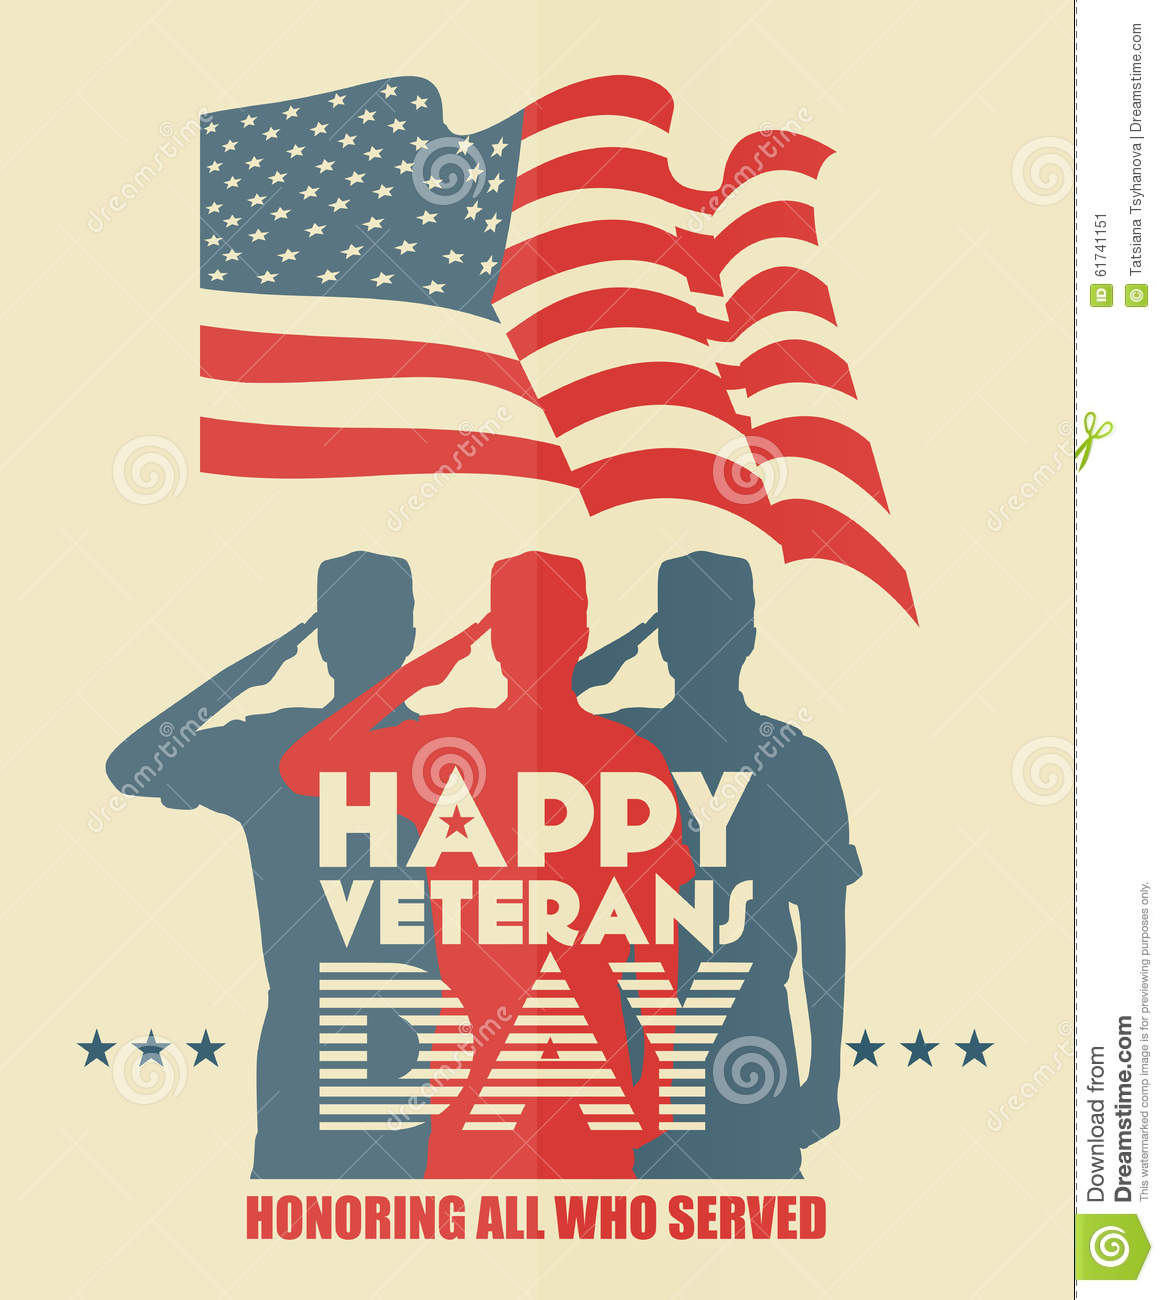 Veterans day greeting card us soldier in silhouette saluting stock veterans day greeting card us soldier in silhouette saluting m4hsunfo